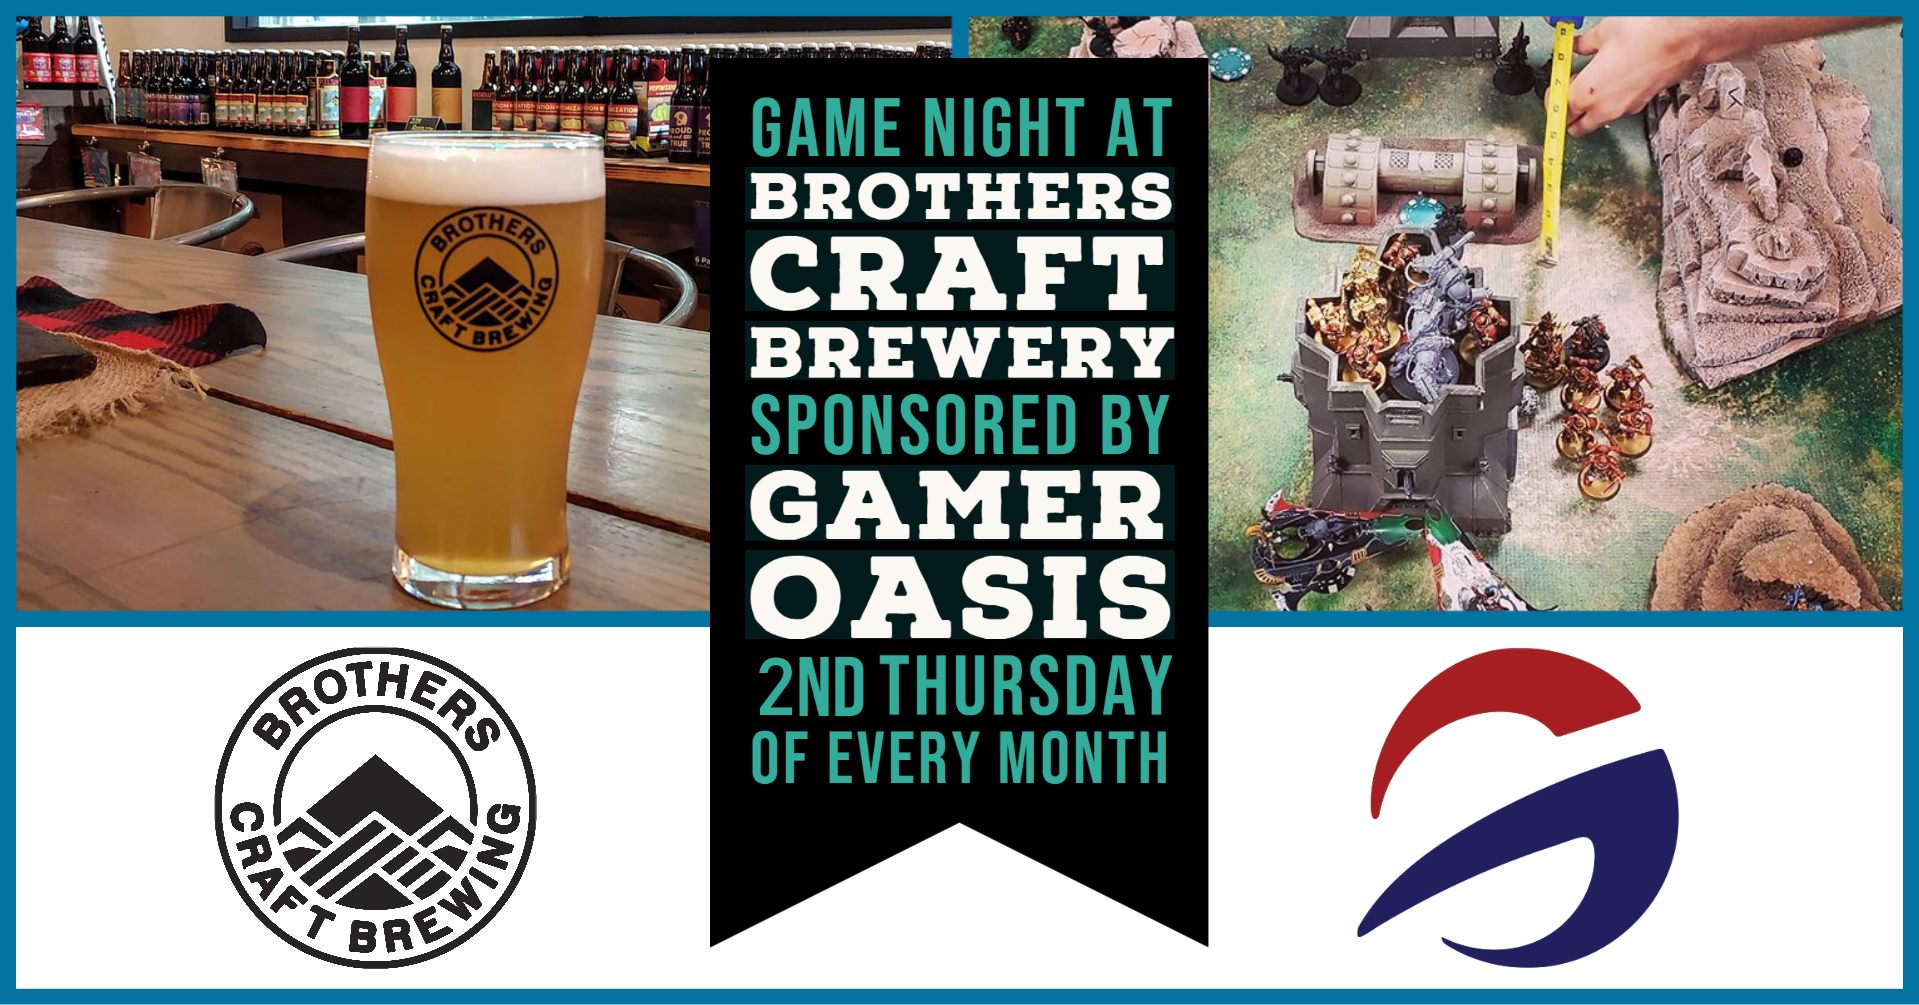 Game Night at Brothers Craft Brewery